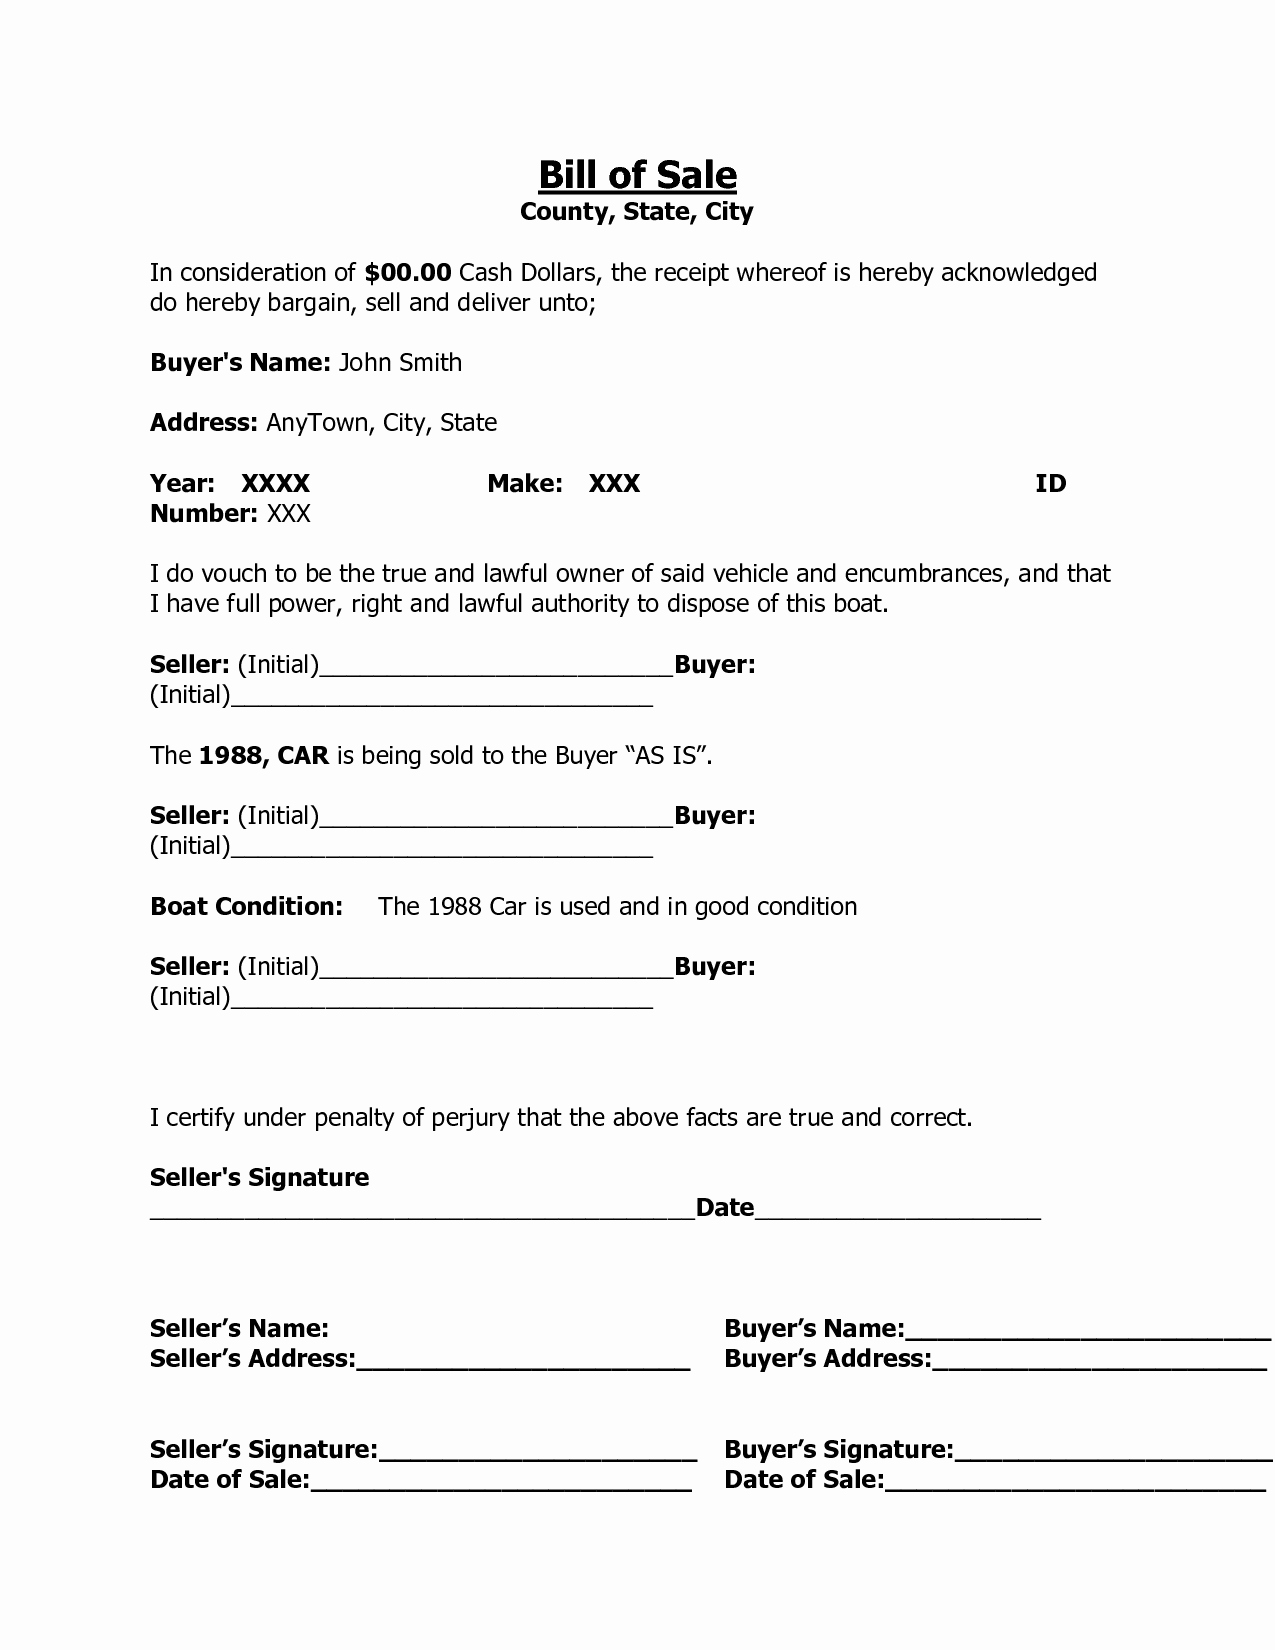 Bill Sell for A Car New Free Printable Free Car Bill Of Sale Template form Generic